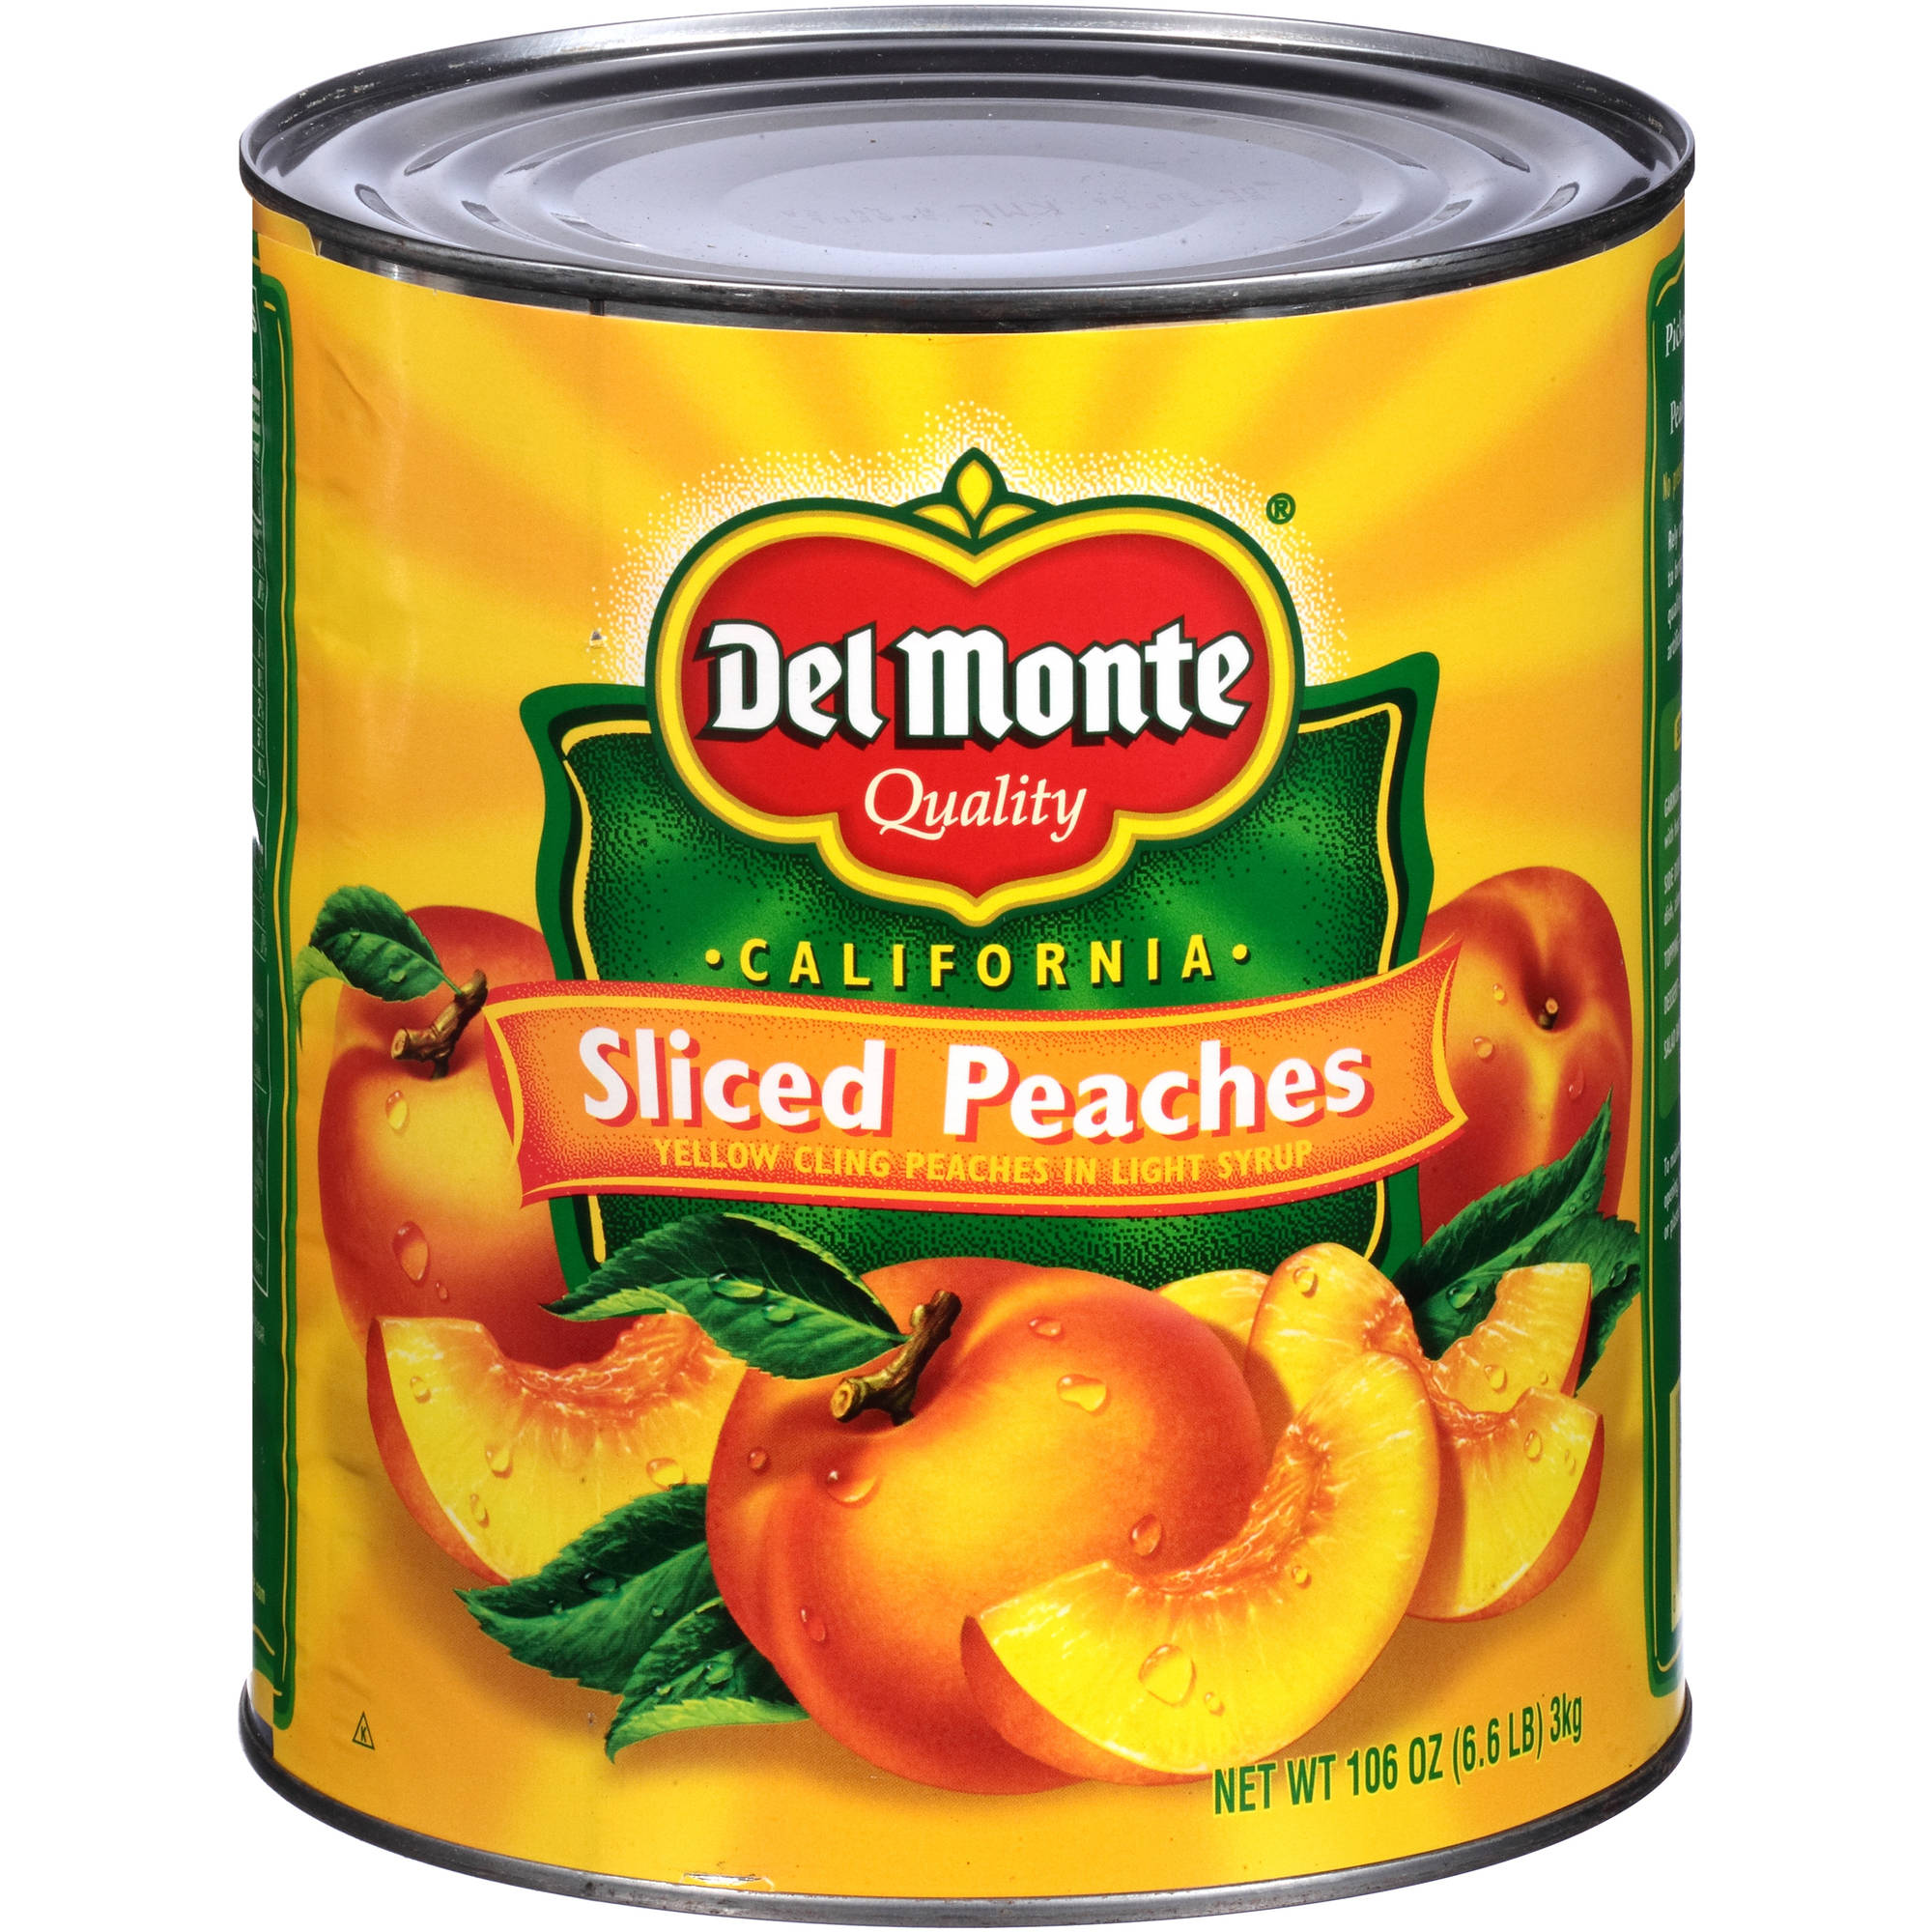 Del Monte California Sliced Peaches, 106 oz